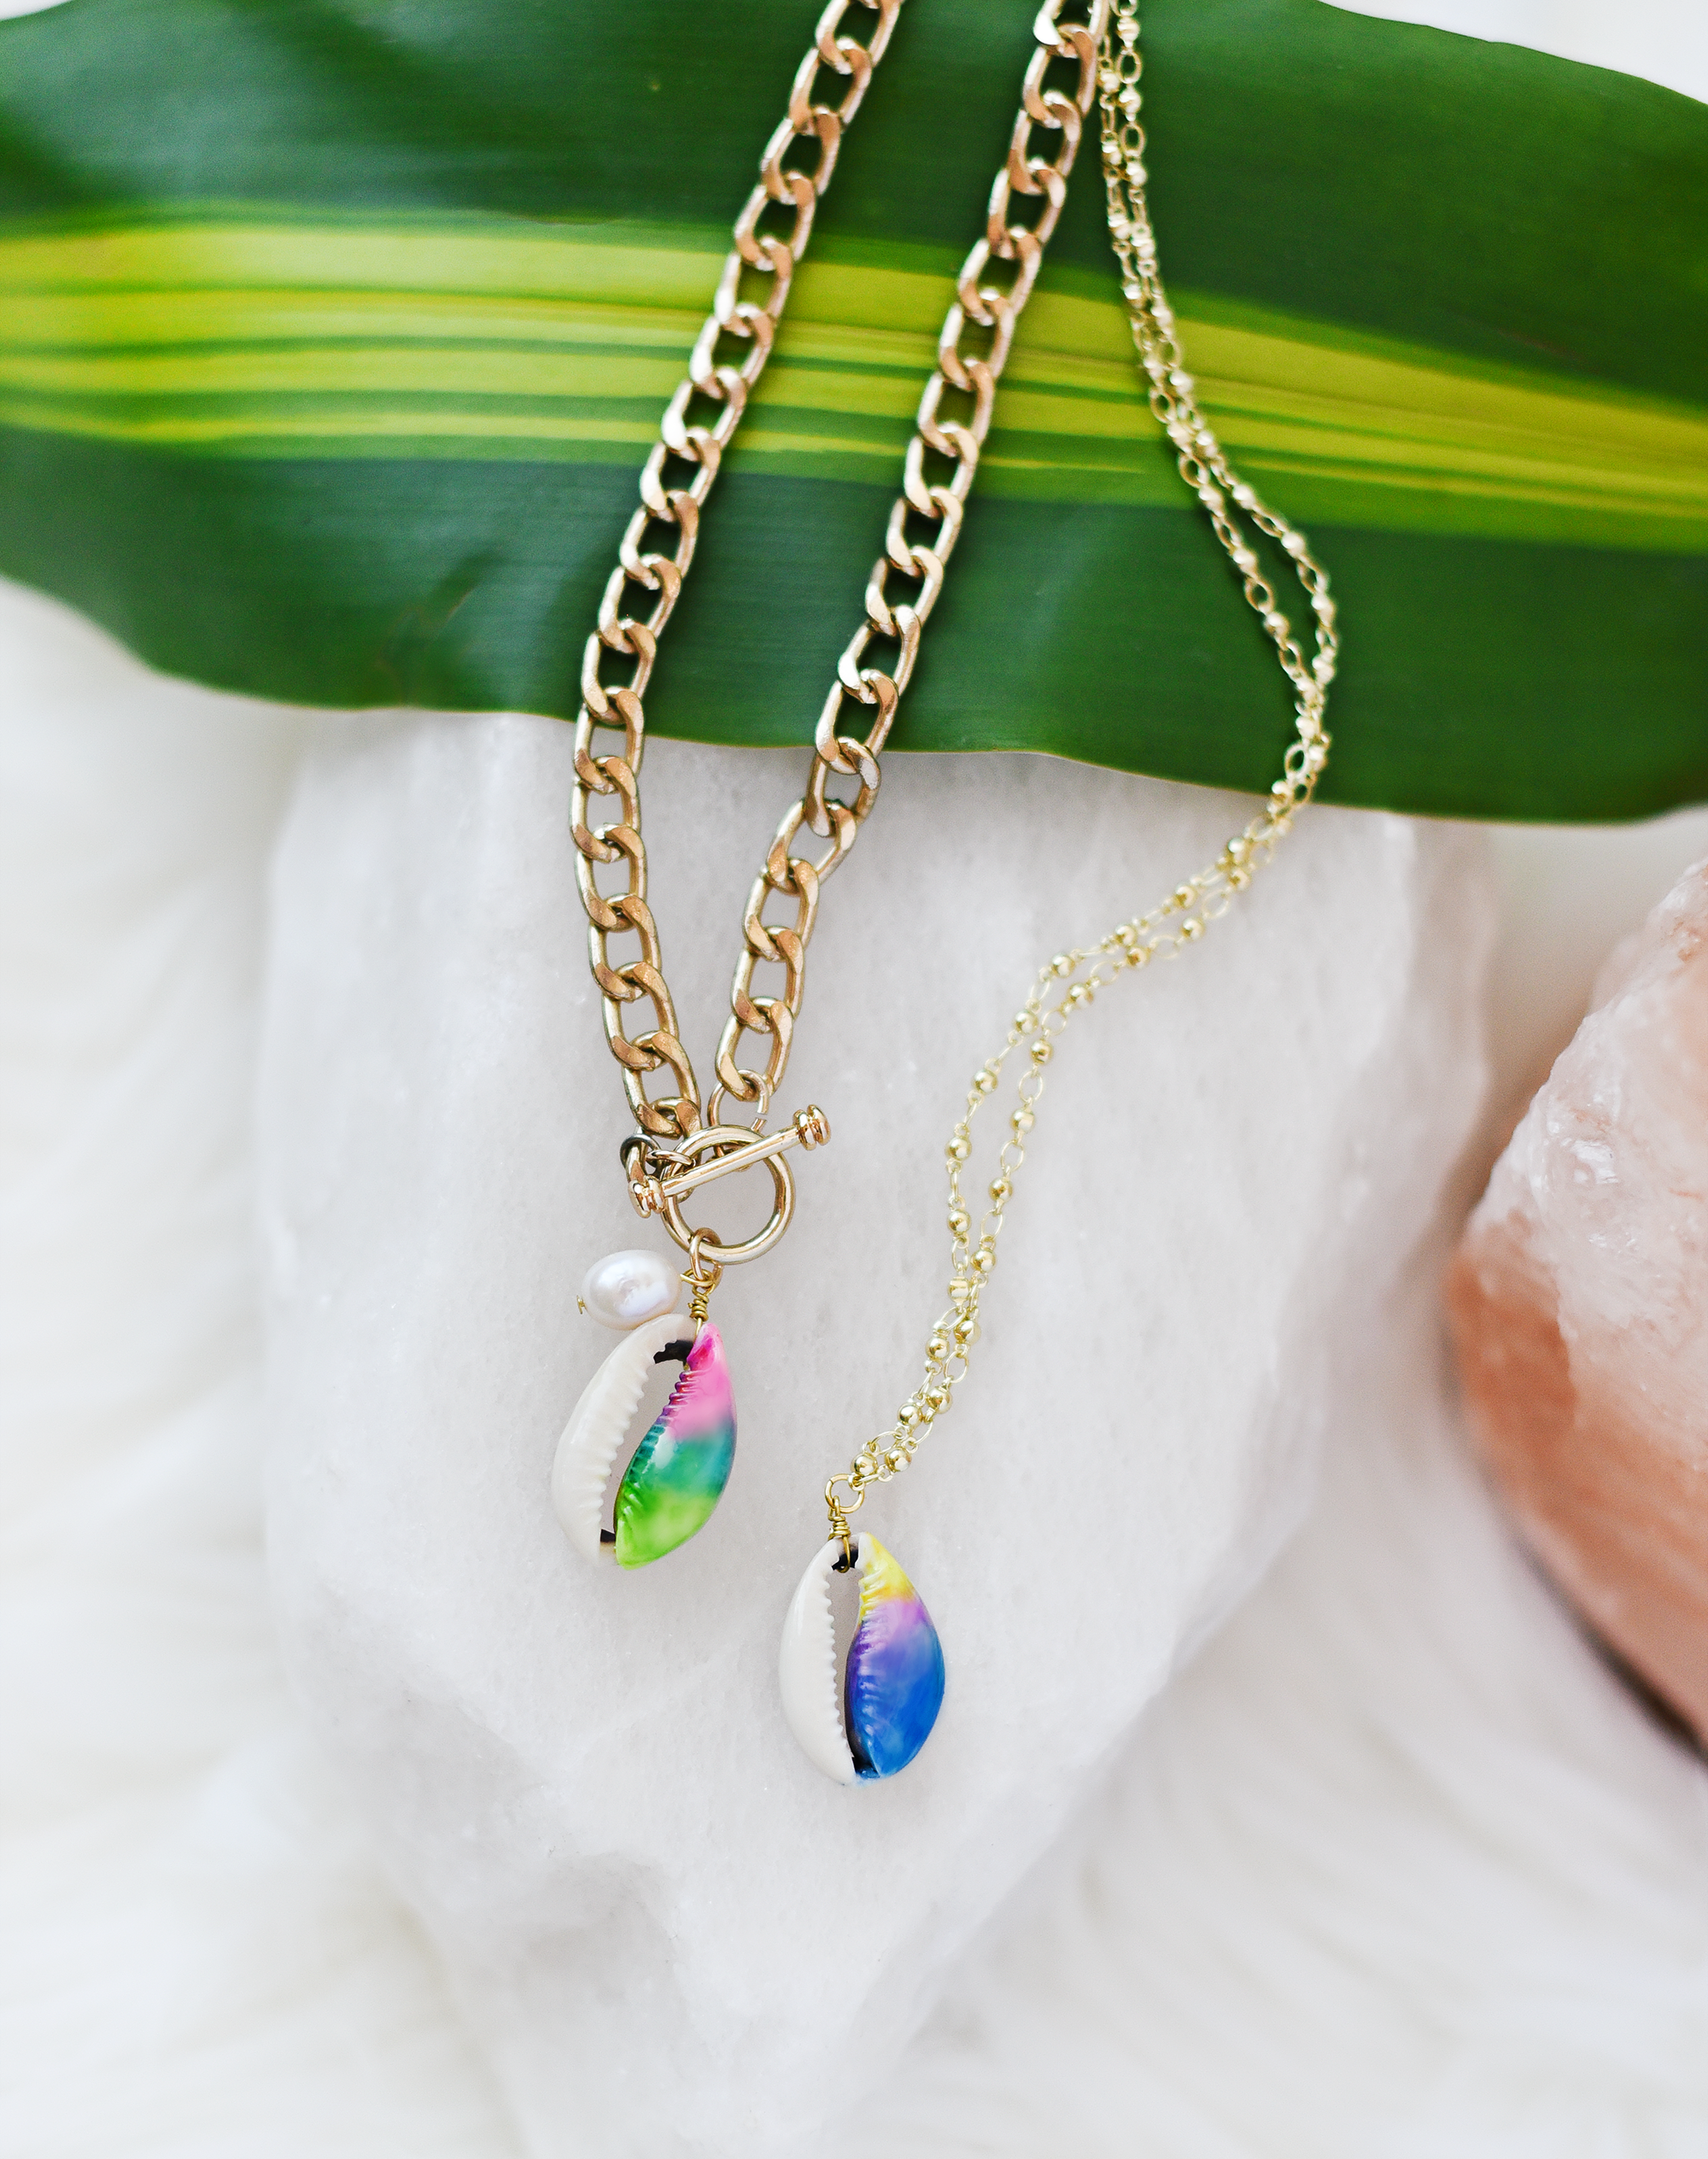 DIY Tie Dye Shell Jewelry by Quiet Lion Creations